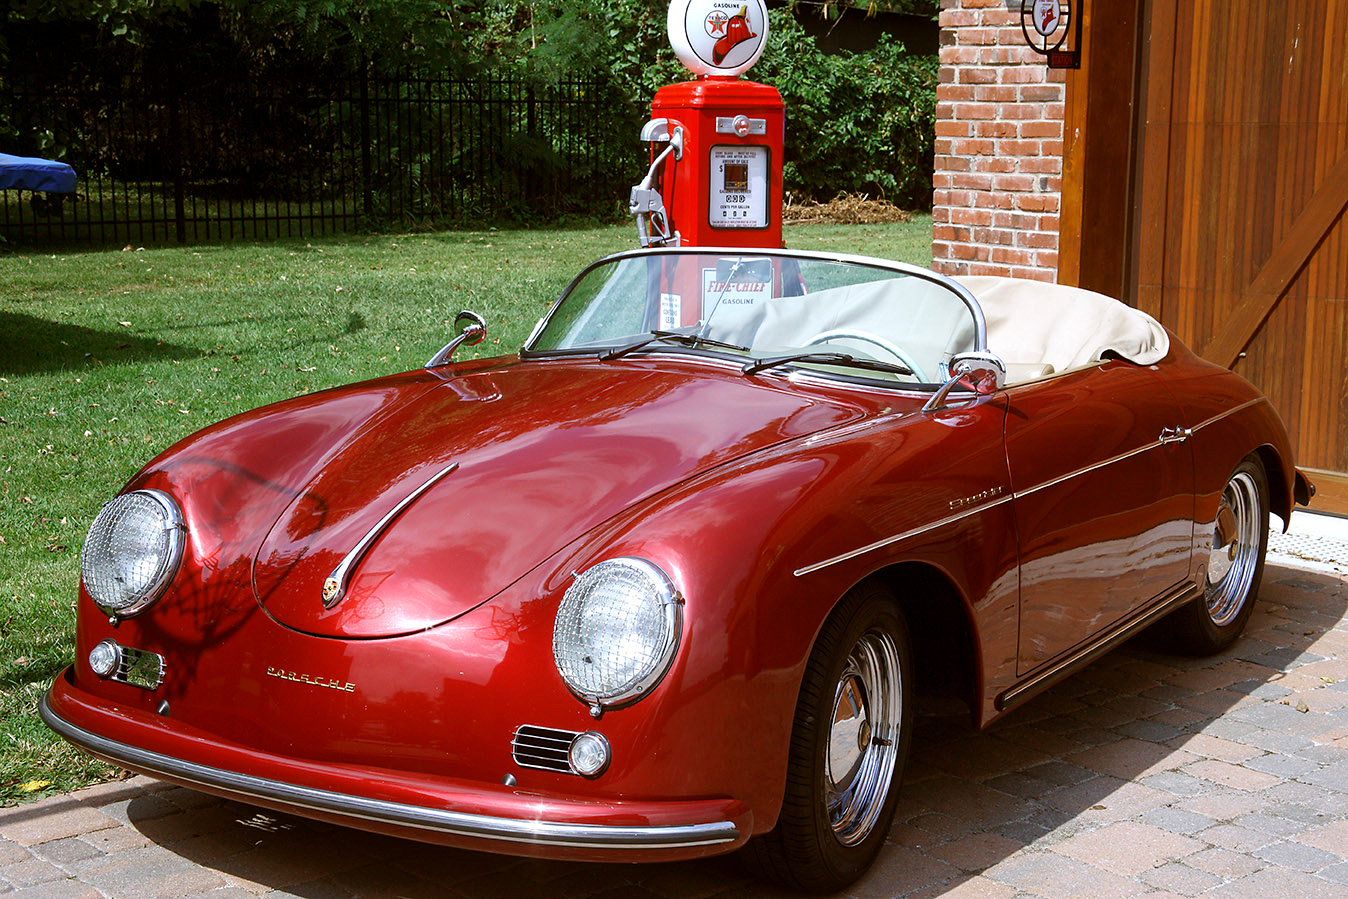 Electric Porsche 356 Speedster replica. < Previous Photo | Next Photo >